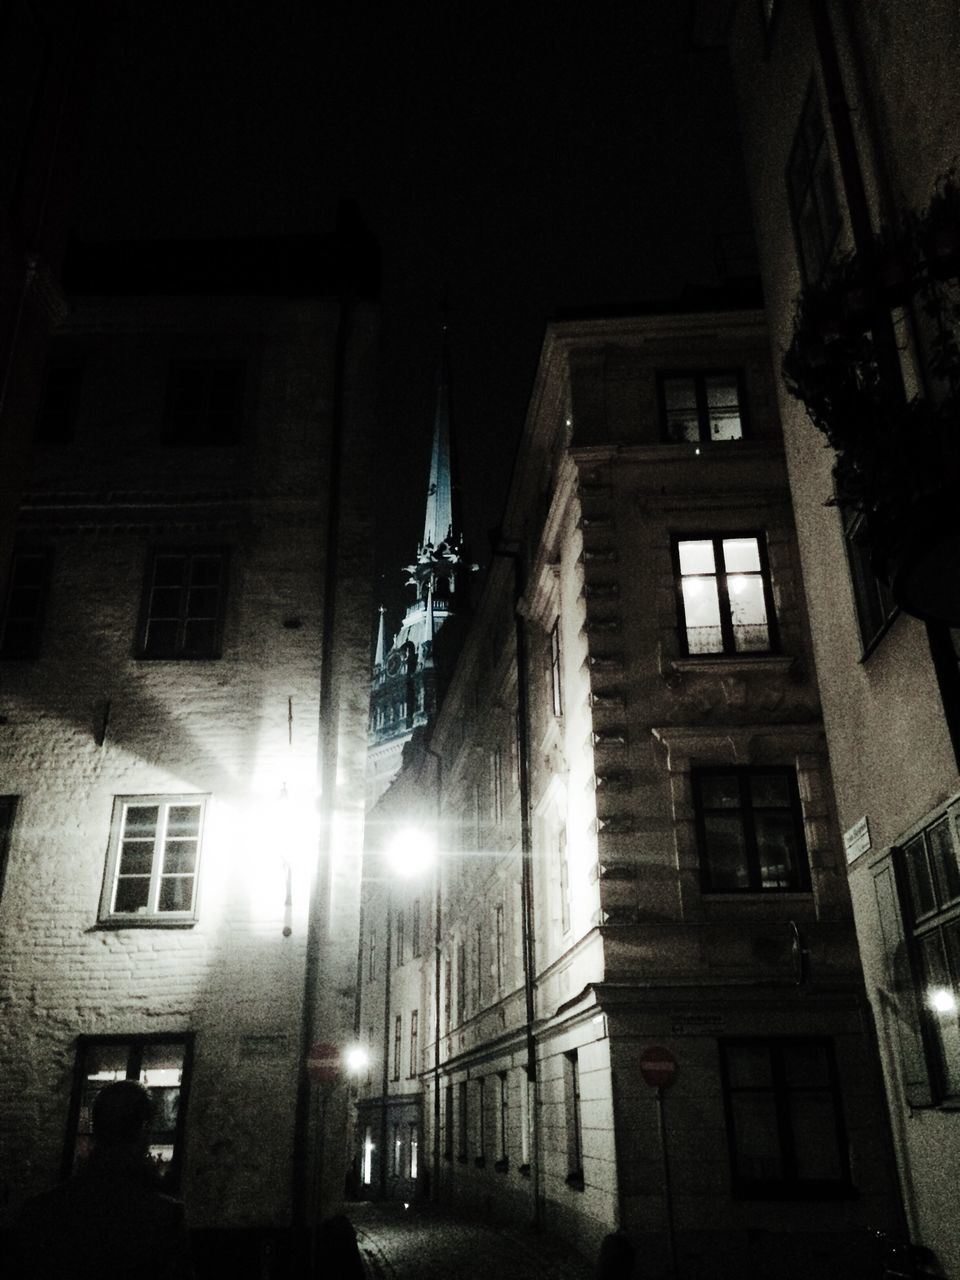 architecture, building exterior, illuminated, built structure, night, low angle view, street light, window, no people, outdoors, city, sky